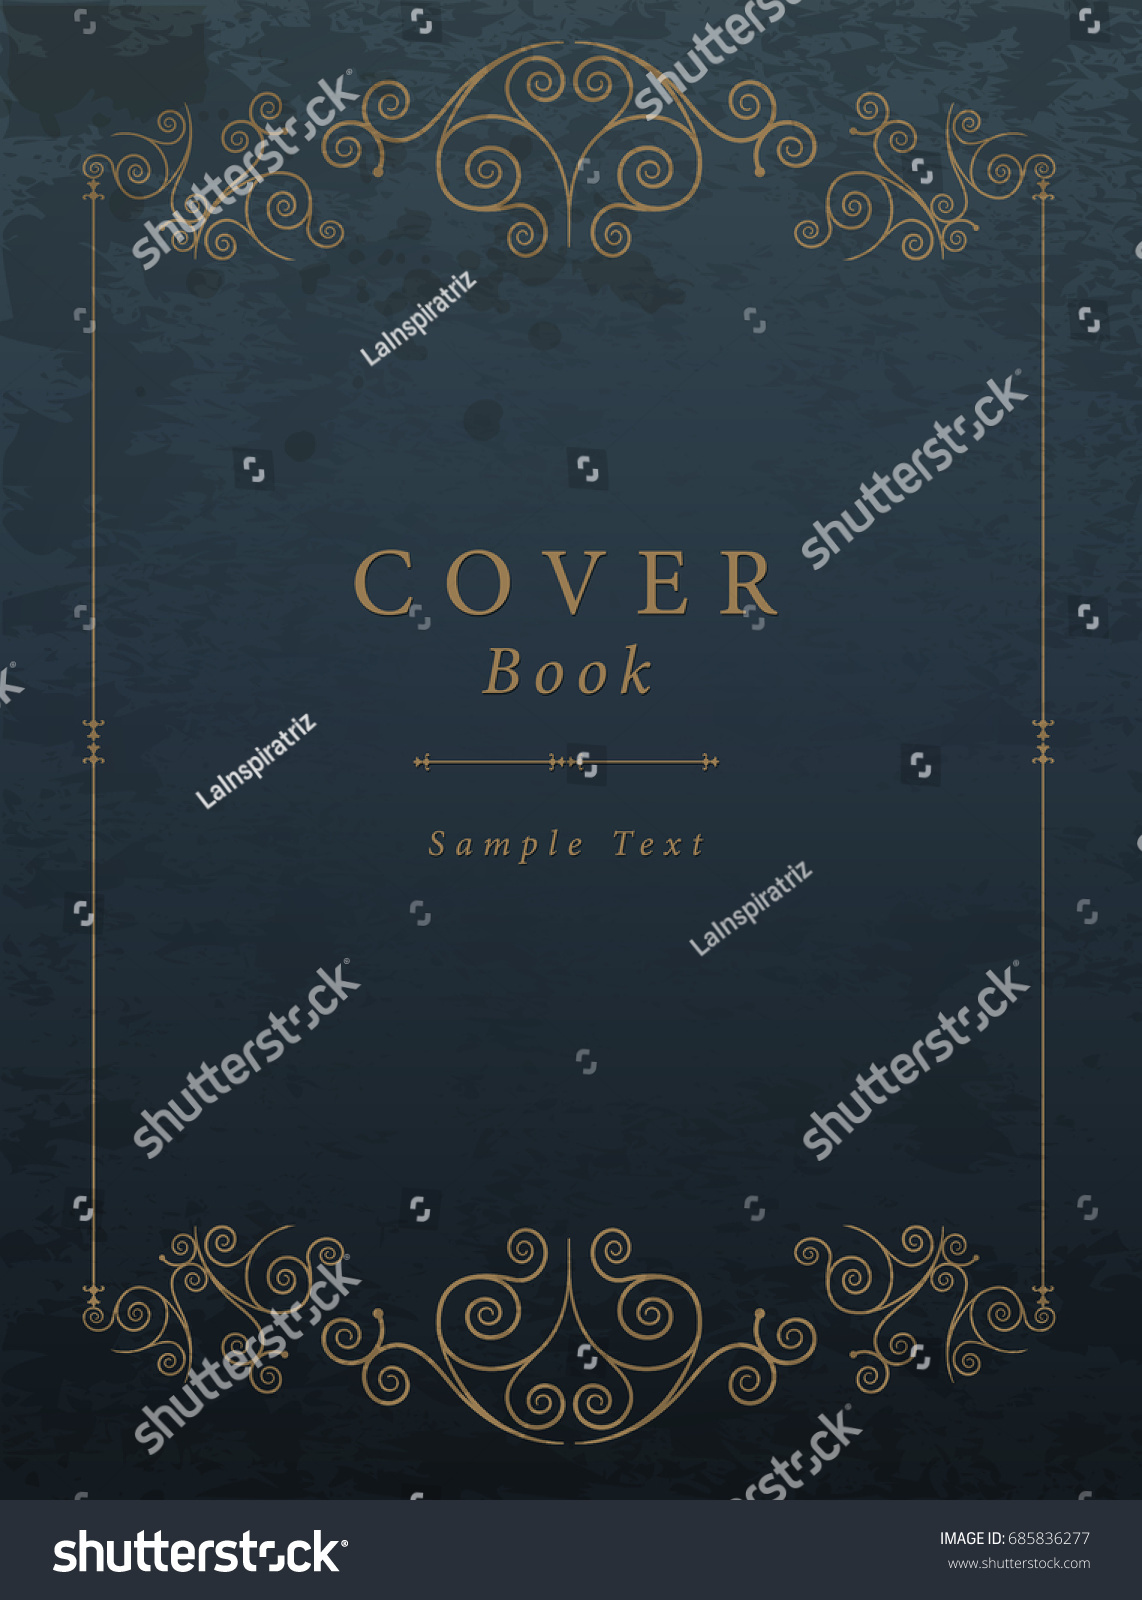 Cool Book Cover Vector : Vintage book cover vector illustration stock